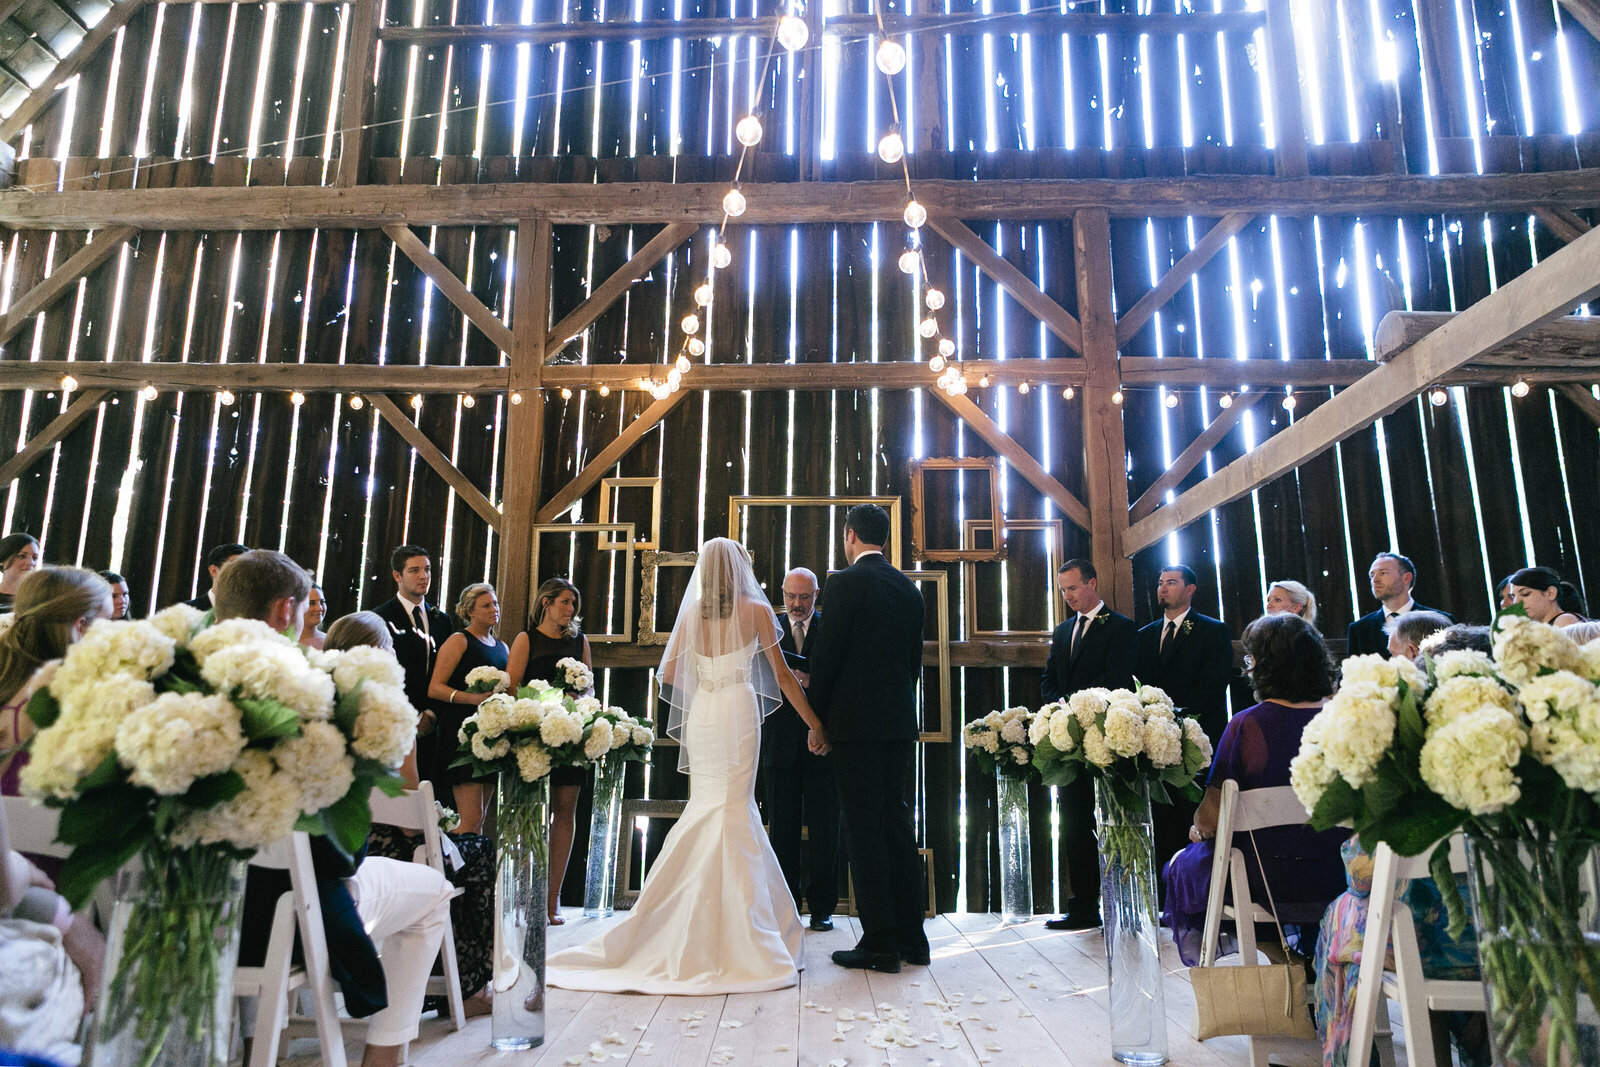 bride and groom ceremony in barn